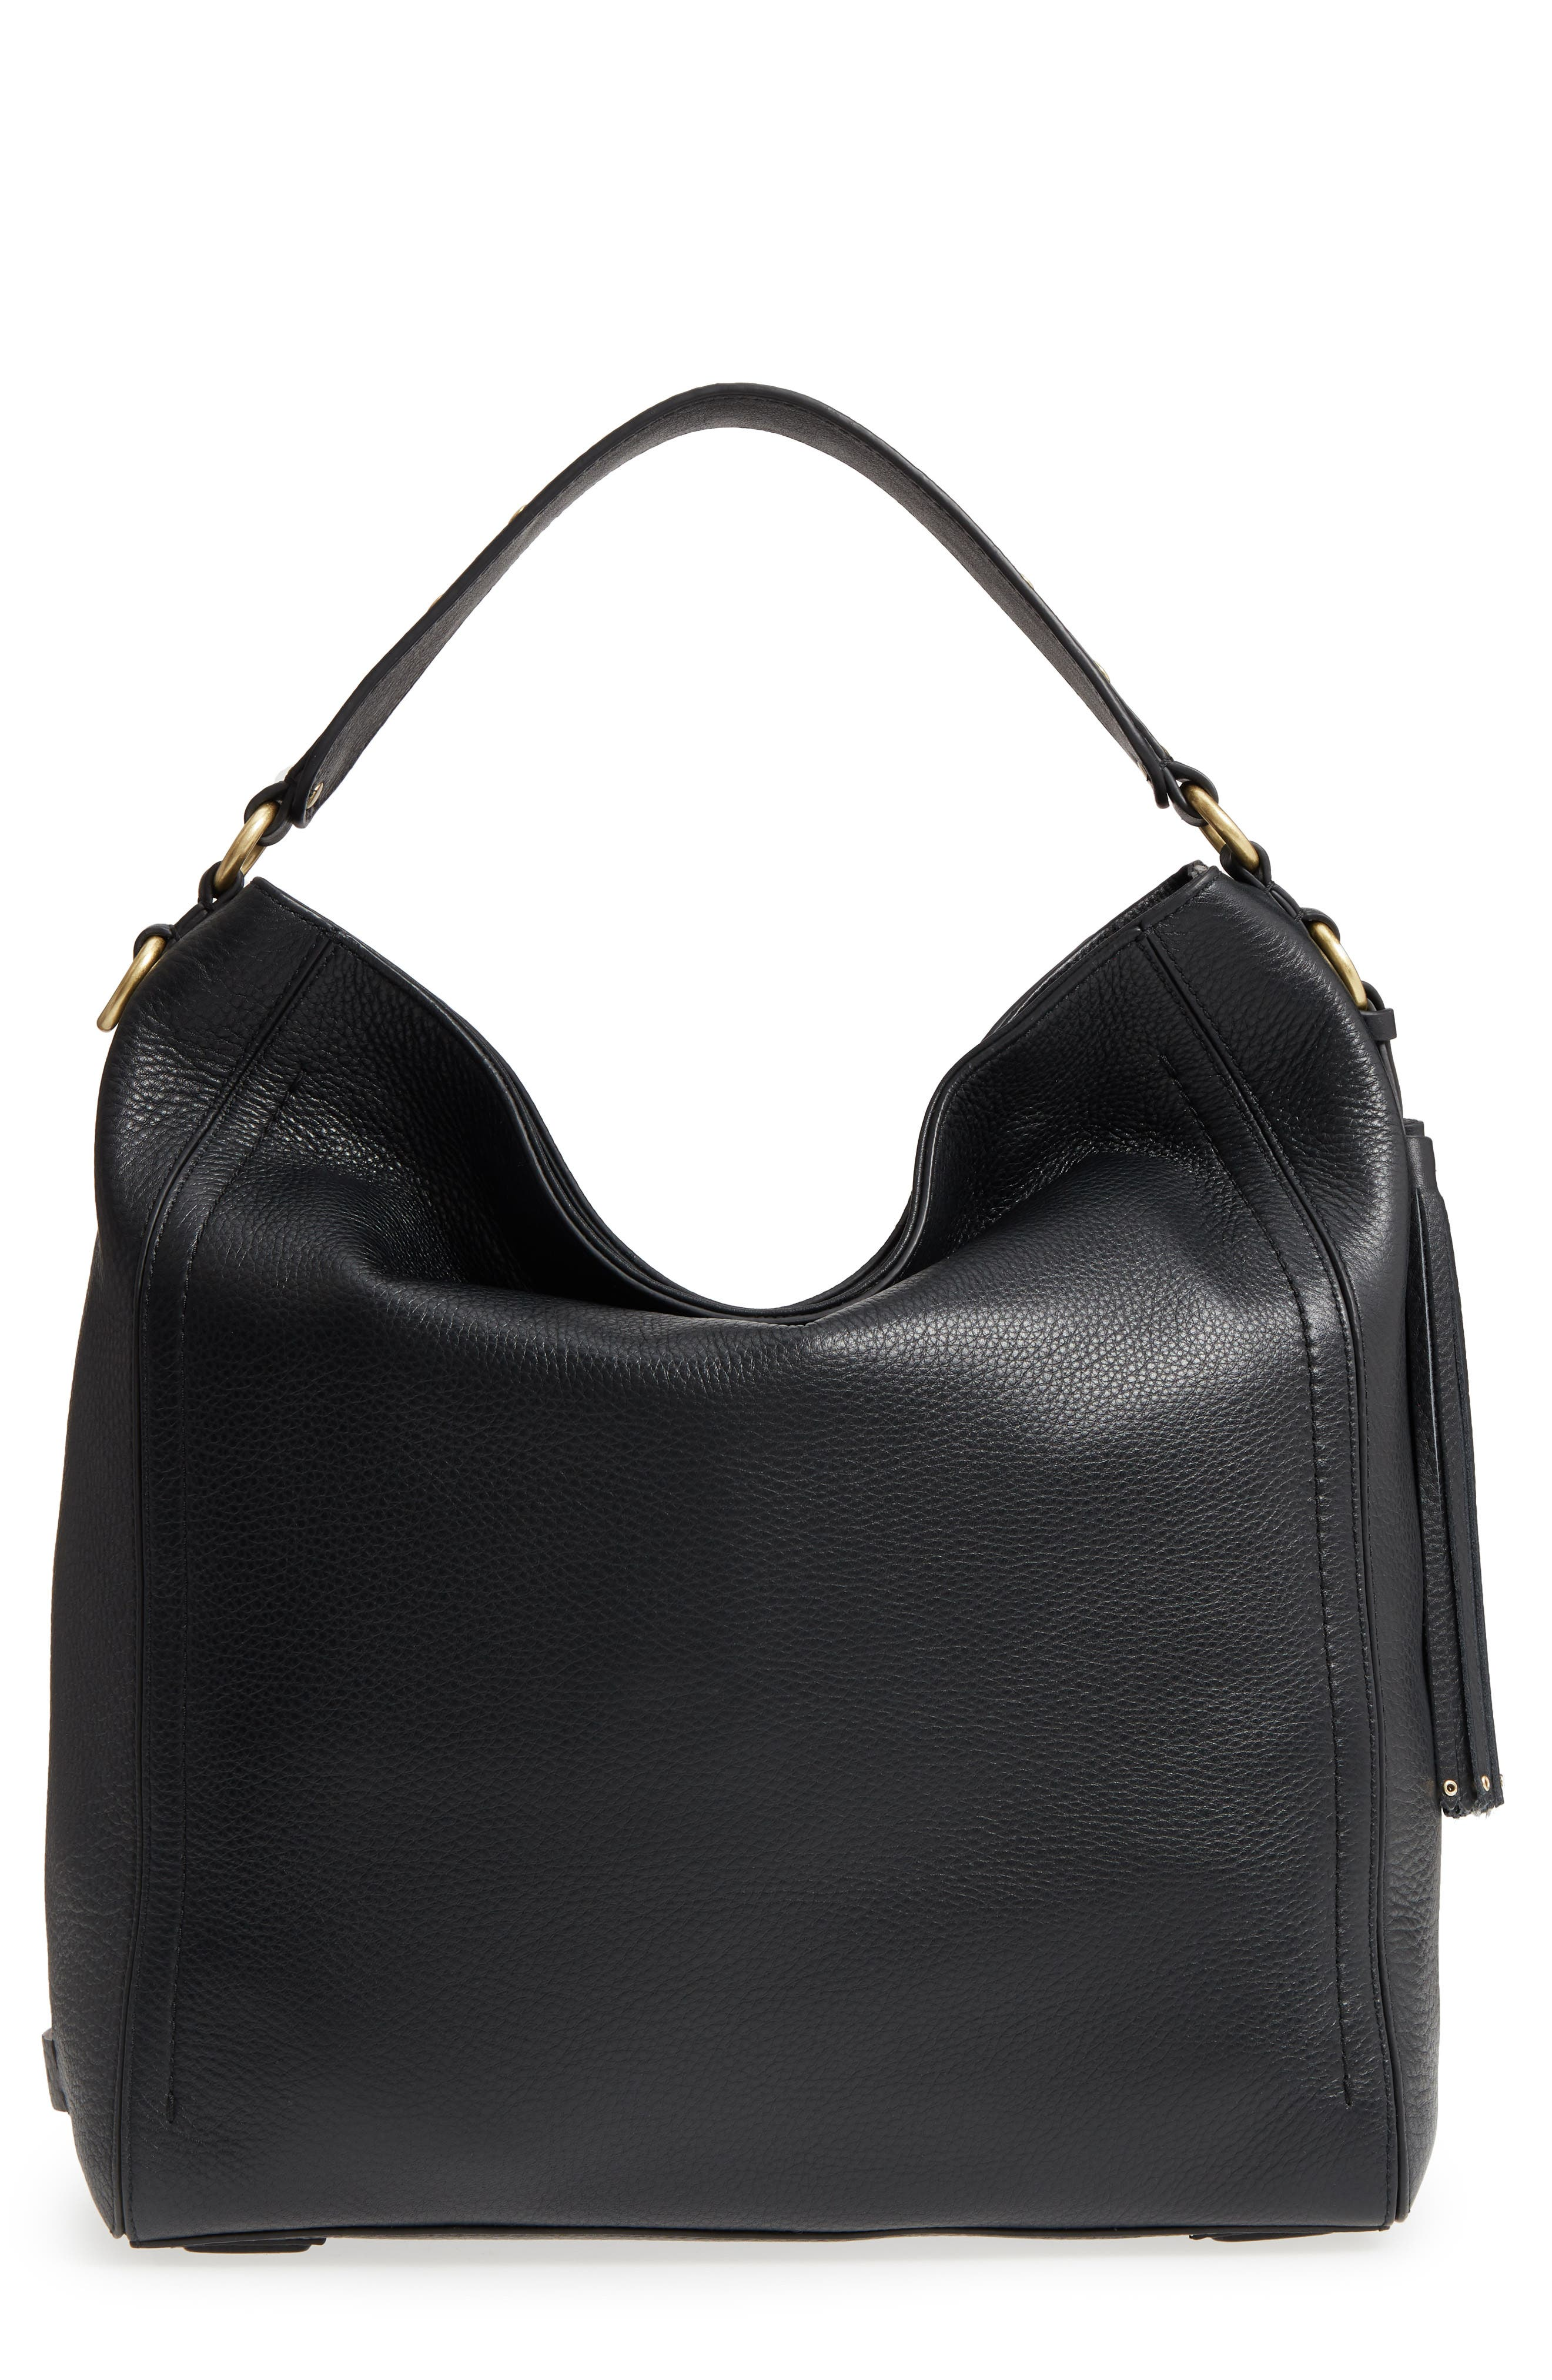 Cassidy RFID Pebbled Leather Bucket Bag,                             Main thumbnail 1, color,                             001